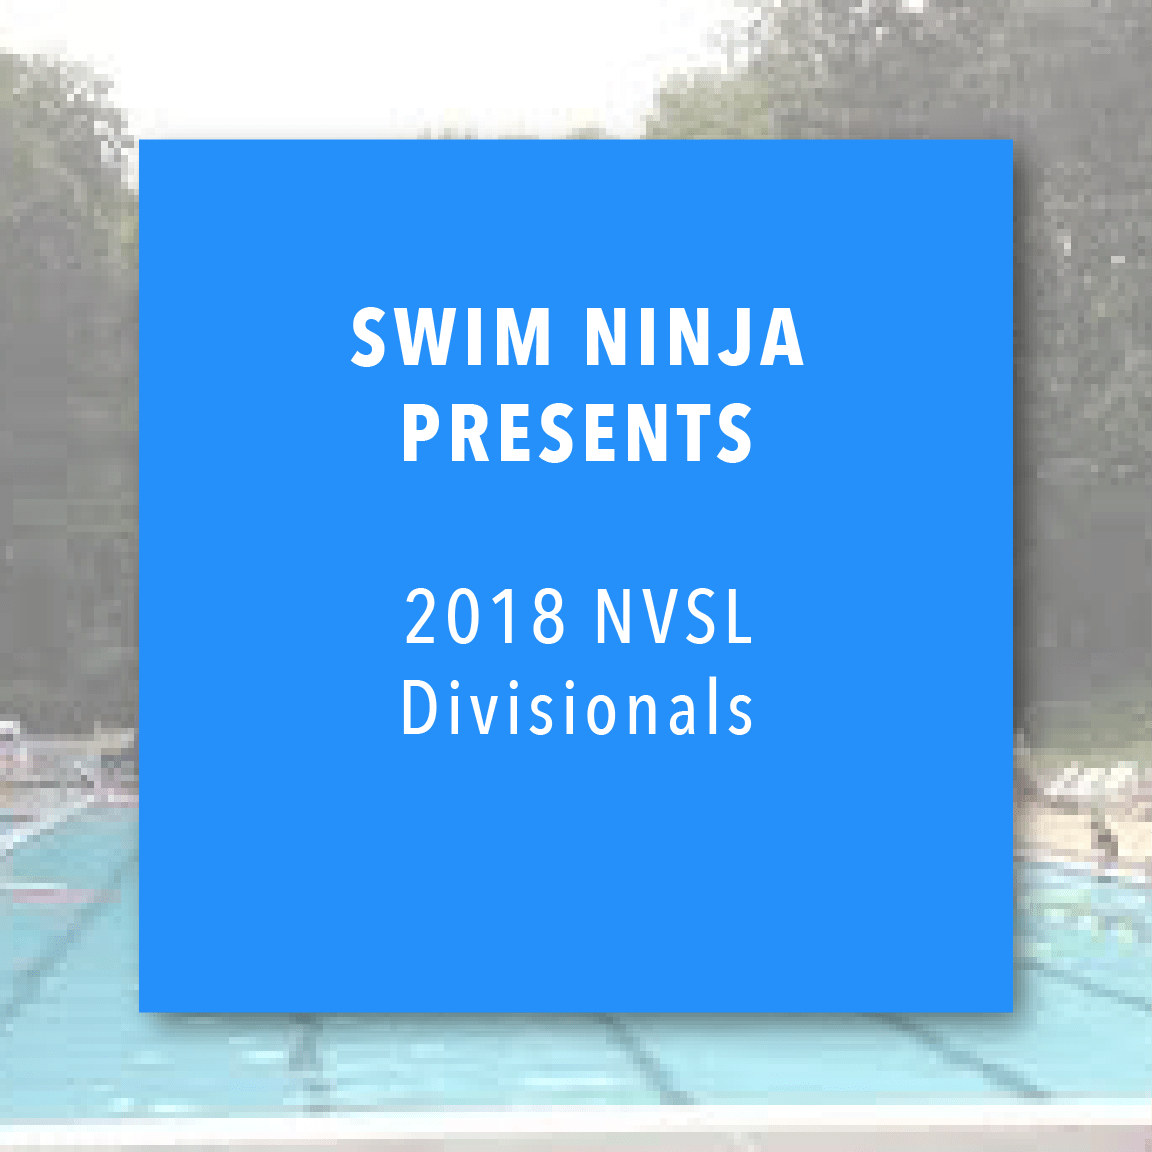 2018 Divisionals: Division 5 Fly